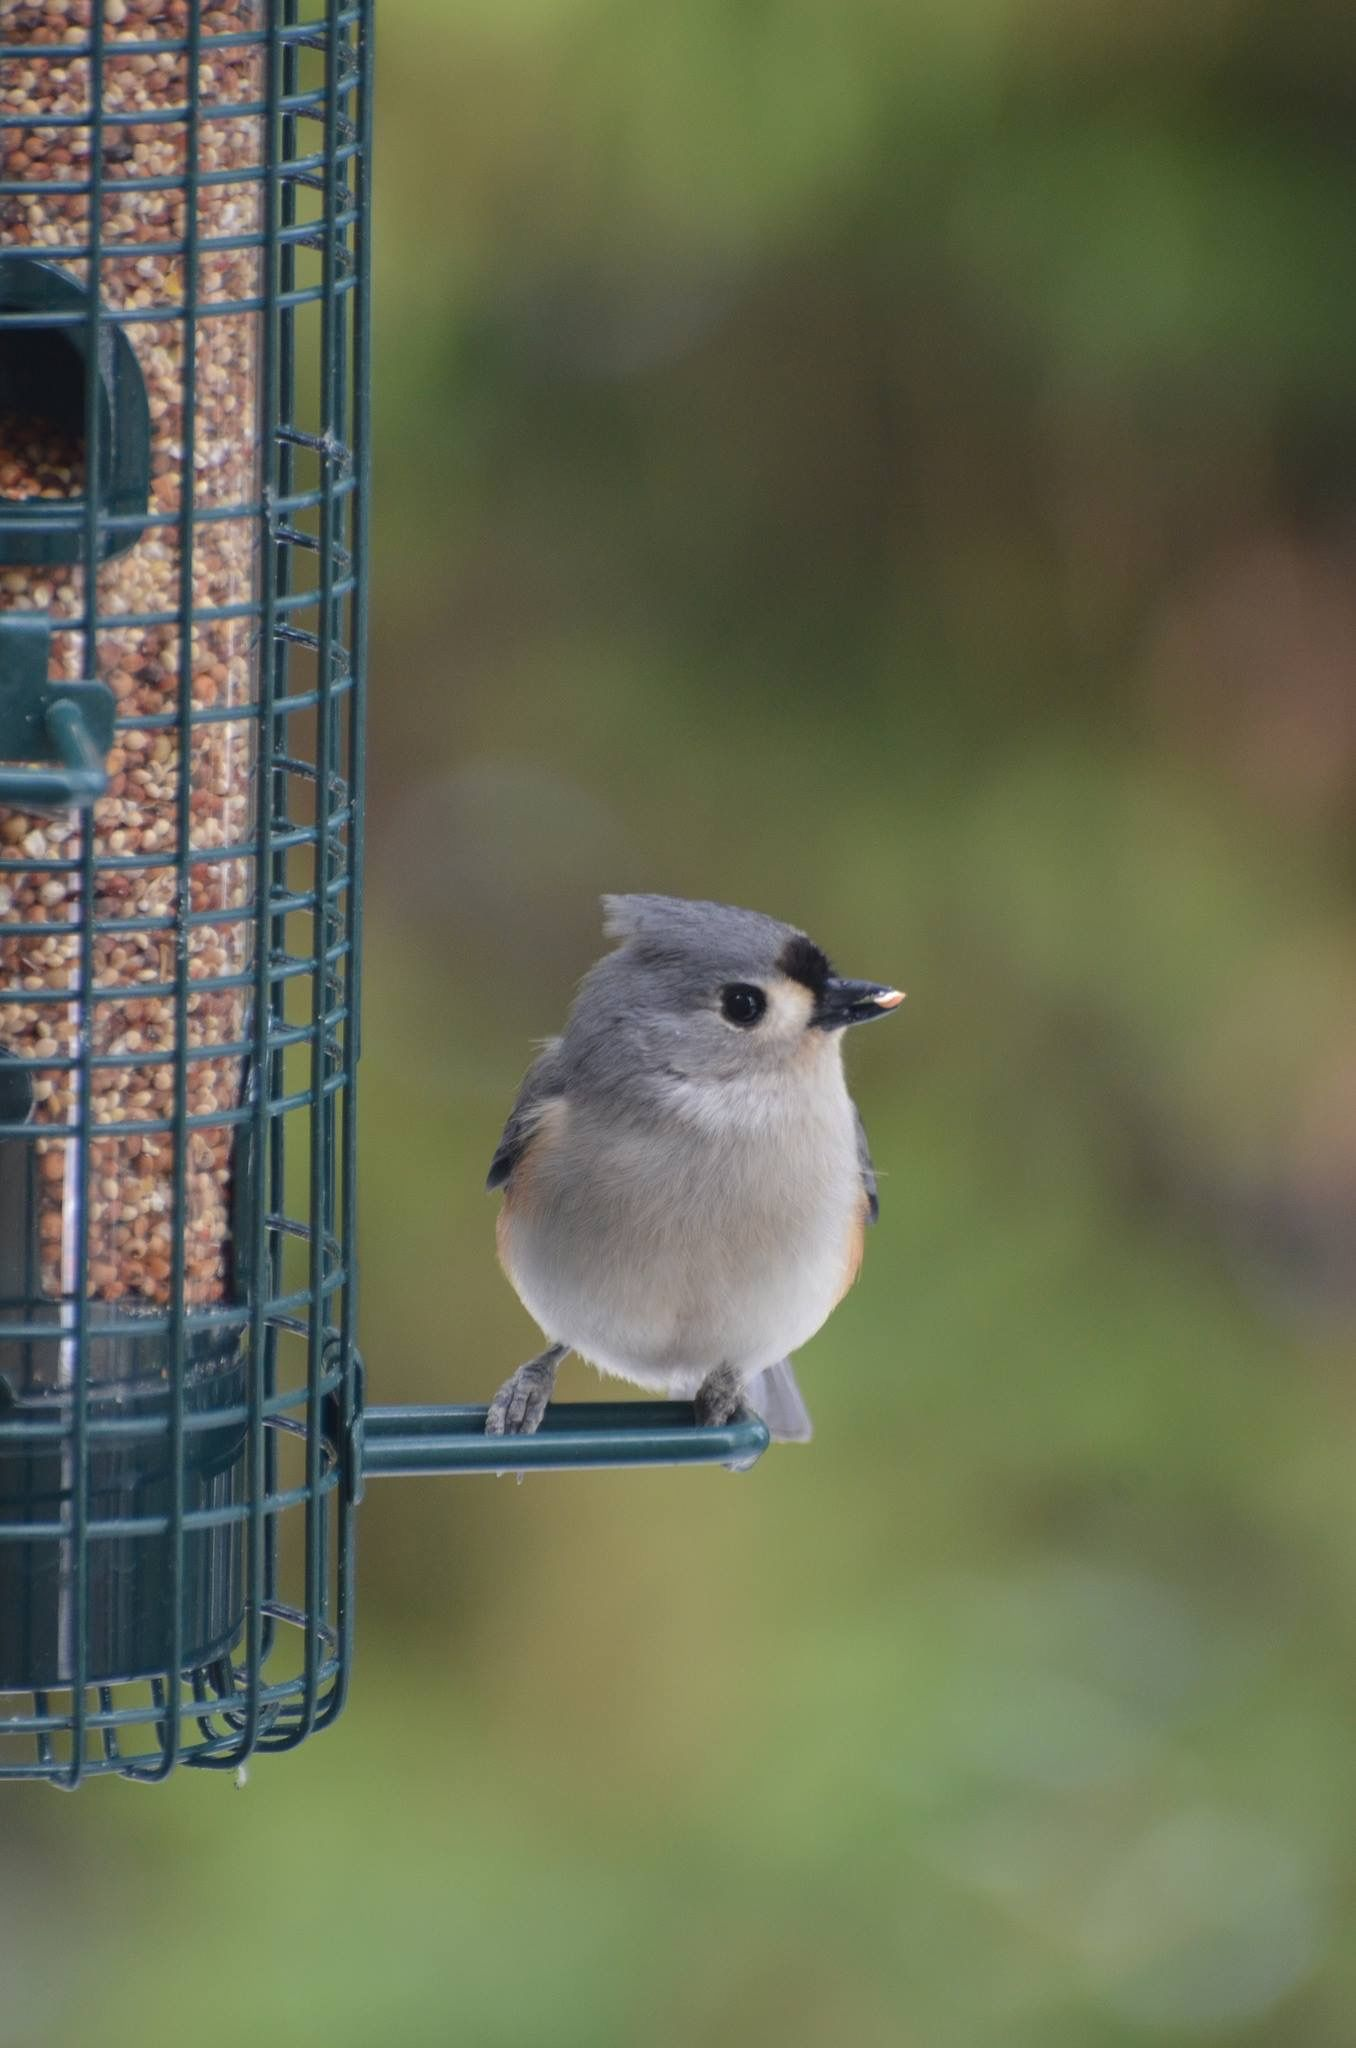 Common visitors to backyard bird feeders tufted titmice are often common visitors to backyard bird feeders tufted titmice are often found in the company of nuthatches and chickadees they can be identified by their black sciox Images